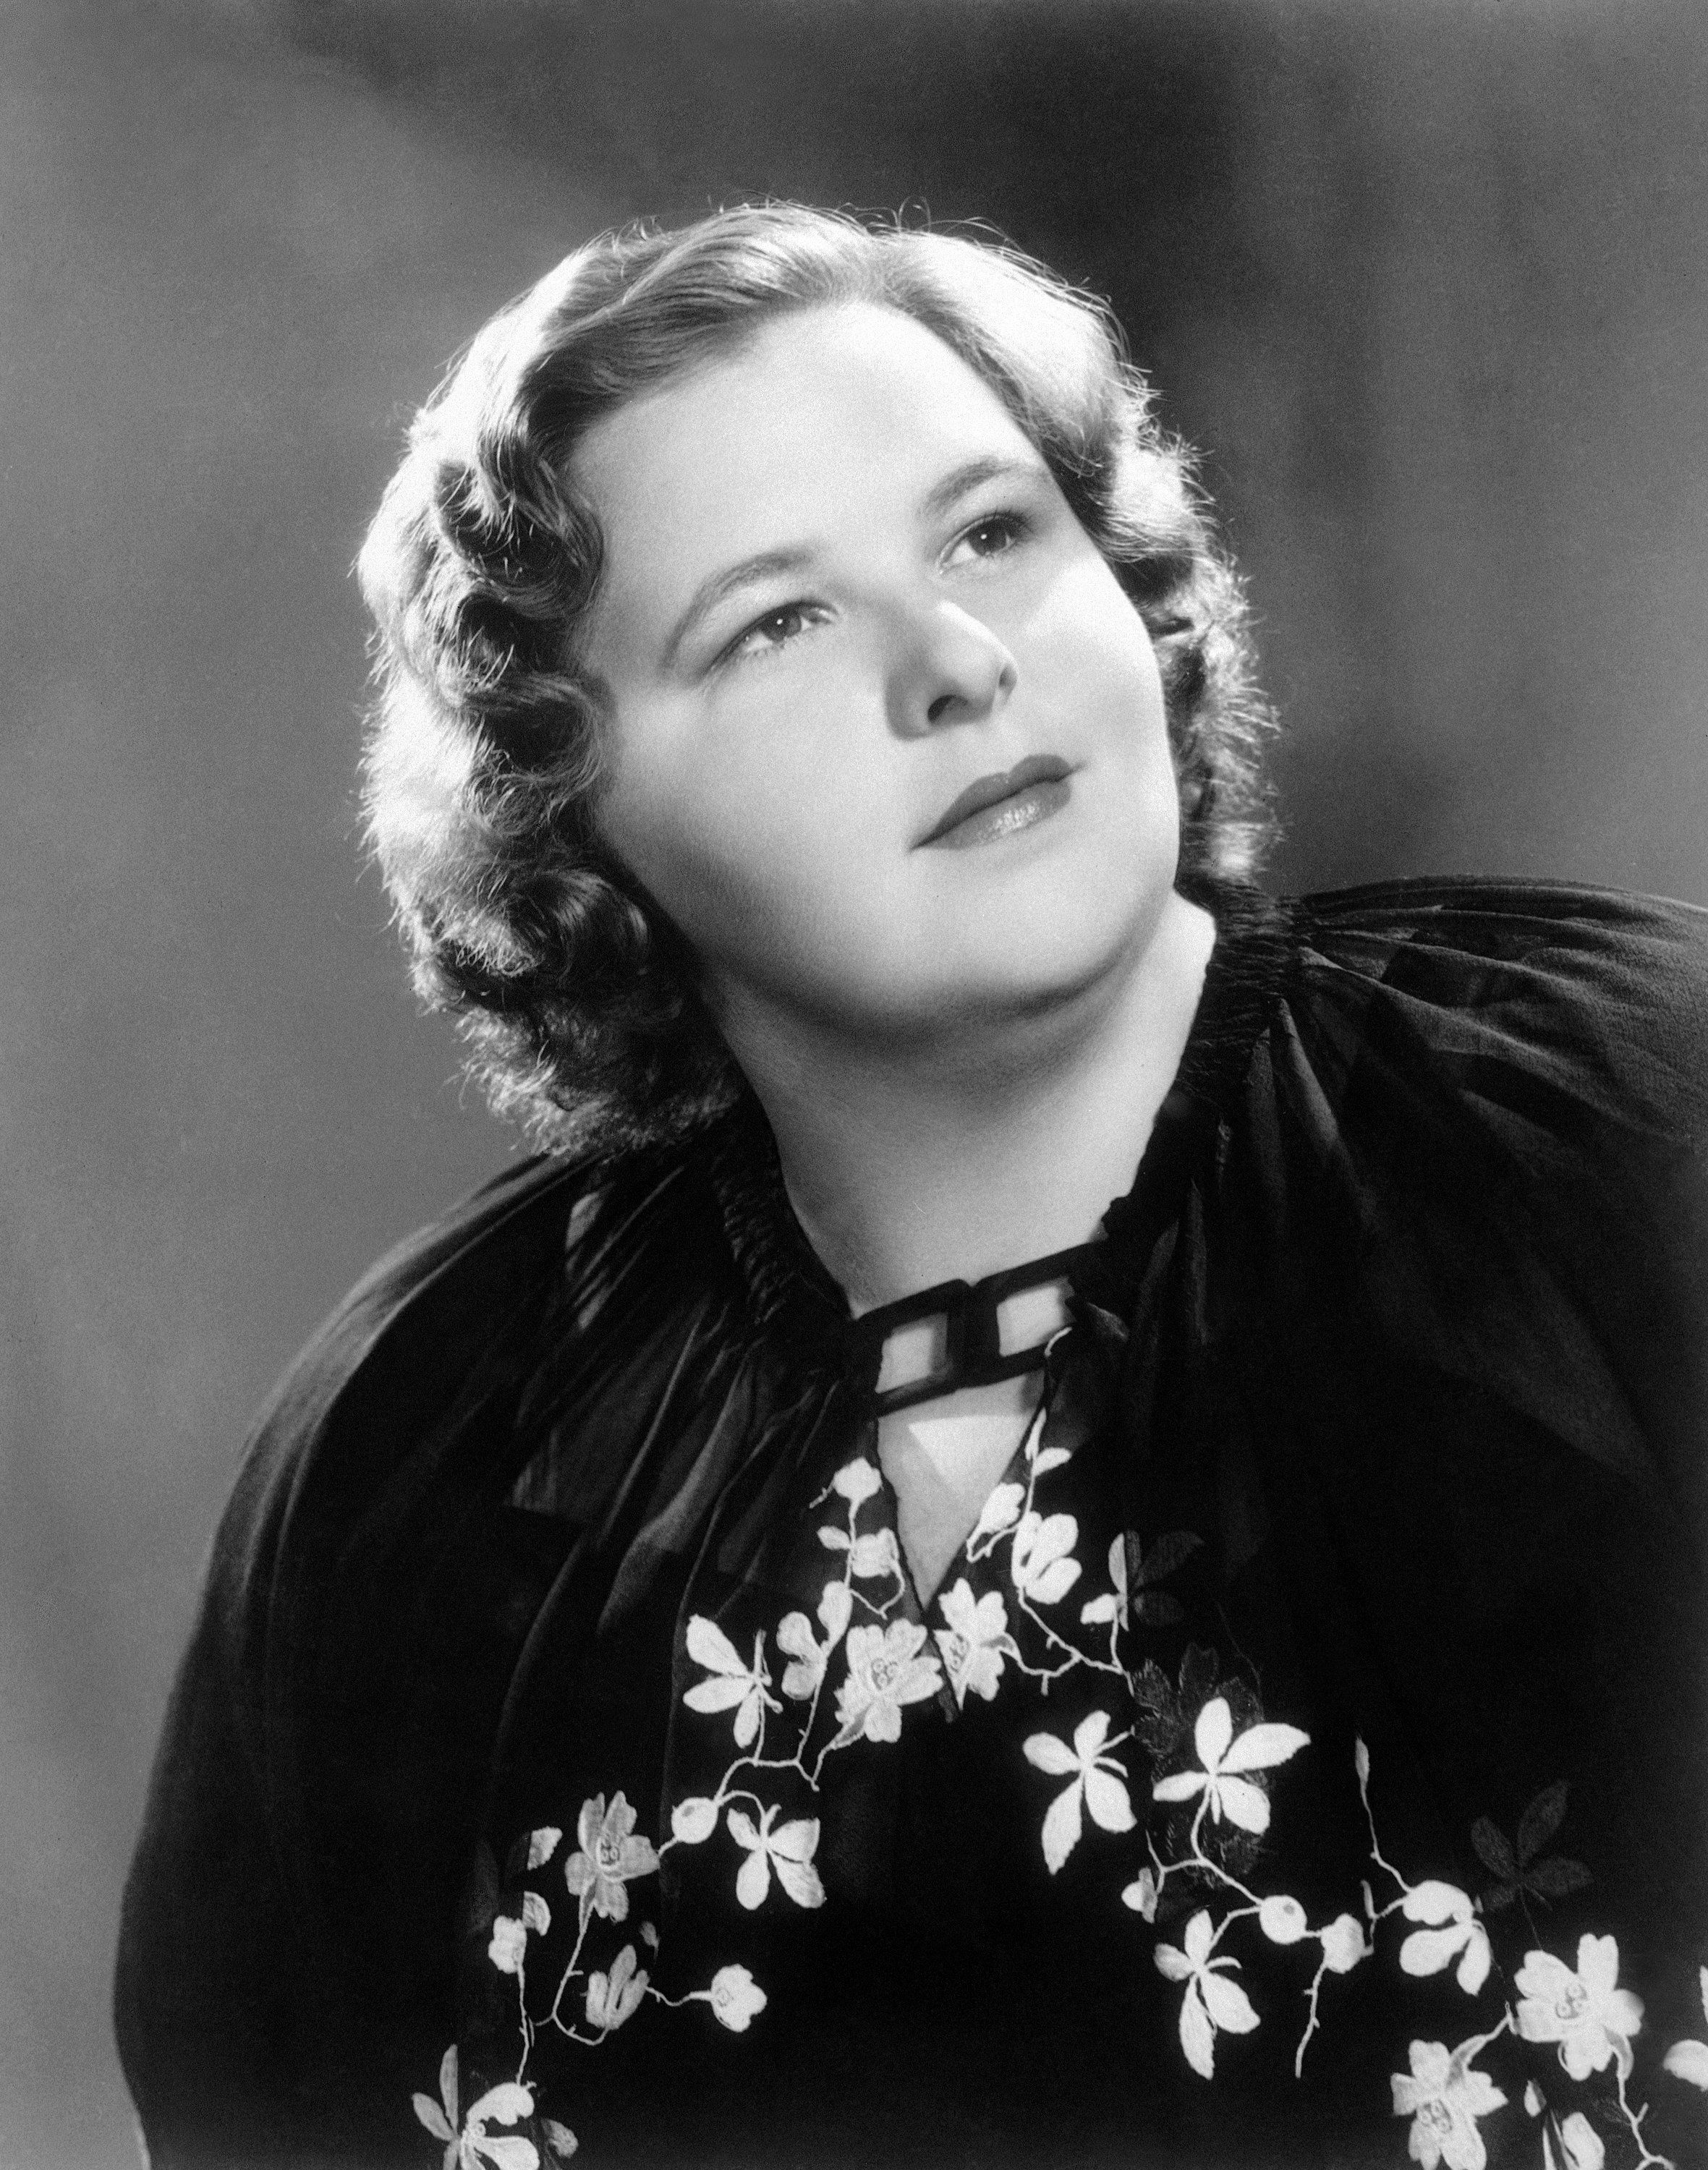 Yankees, Flyers Drop Kate Smith's 'God Bless America' After Listening to Singer's Racist Lyrics